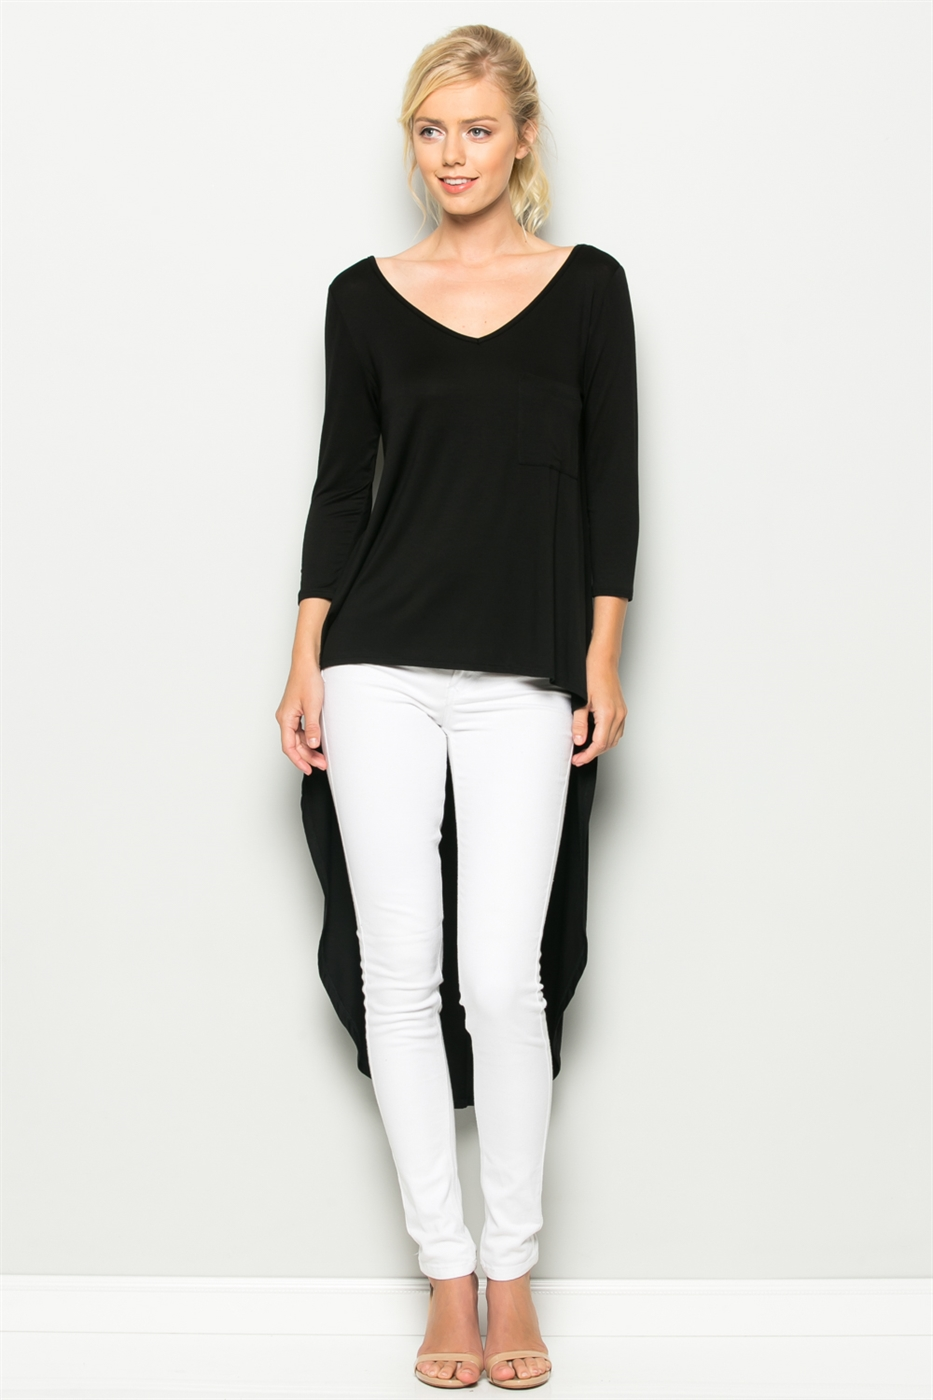 3/4 SLEEVE HI LOW V-NECK TOP - orangeshine.com